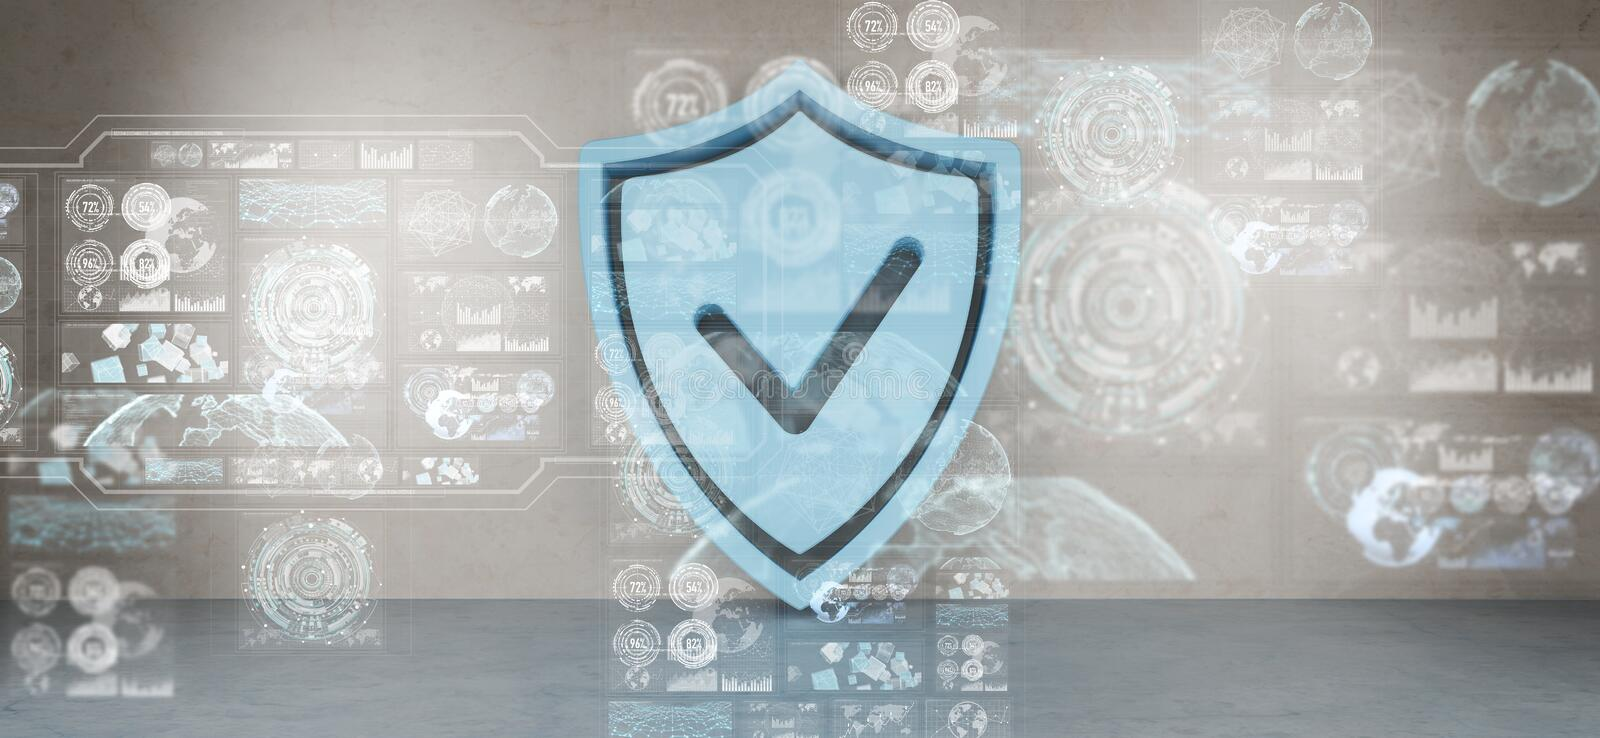 Shield icons in interior with web interface 3D rendering royalty free illustration